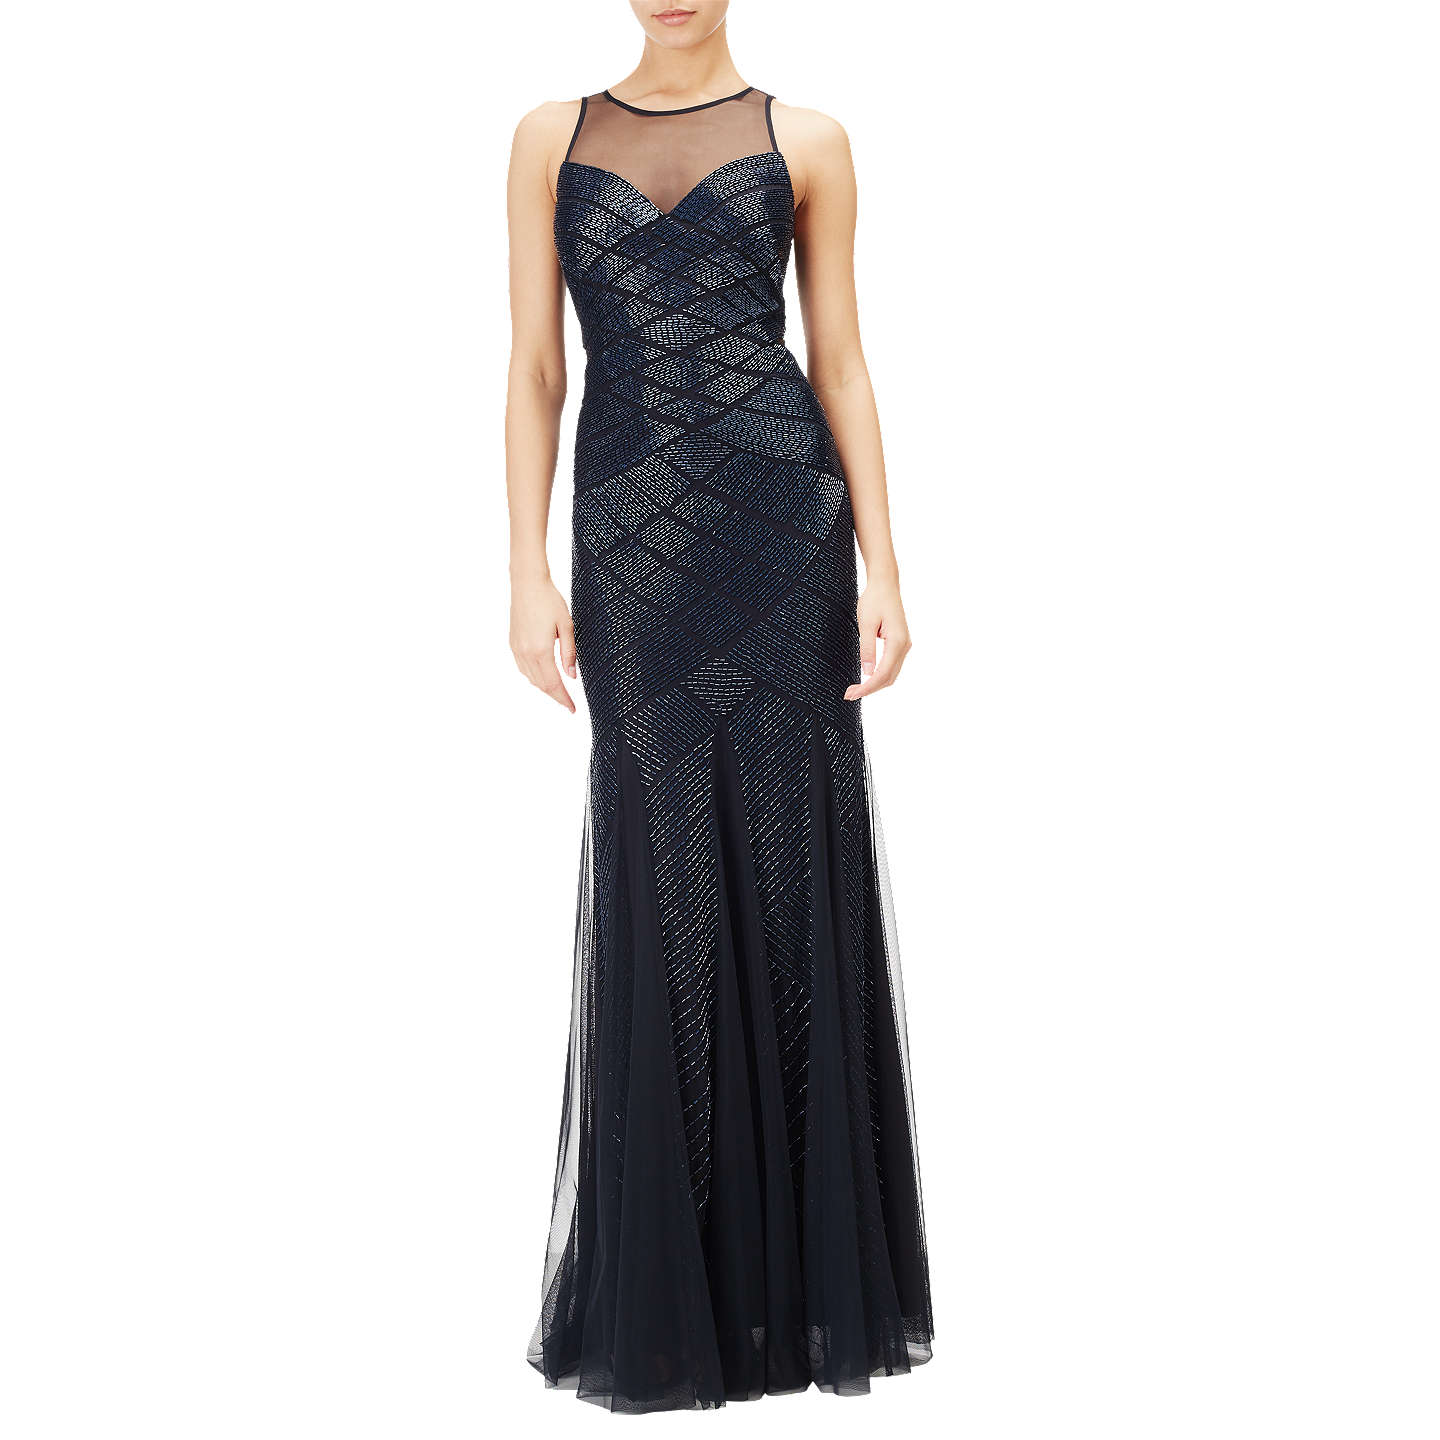 Adrianna Papell Beaded Halter Mermaid Gown, Midnight at John Lewis